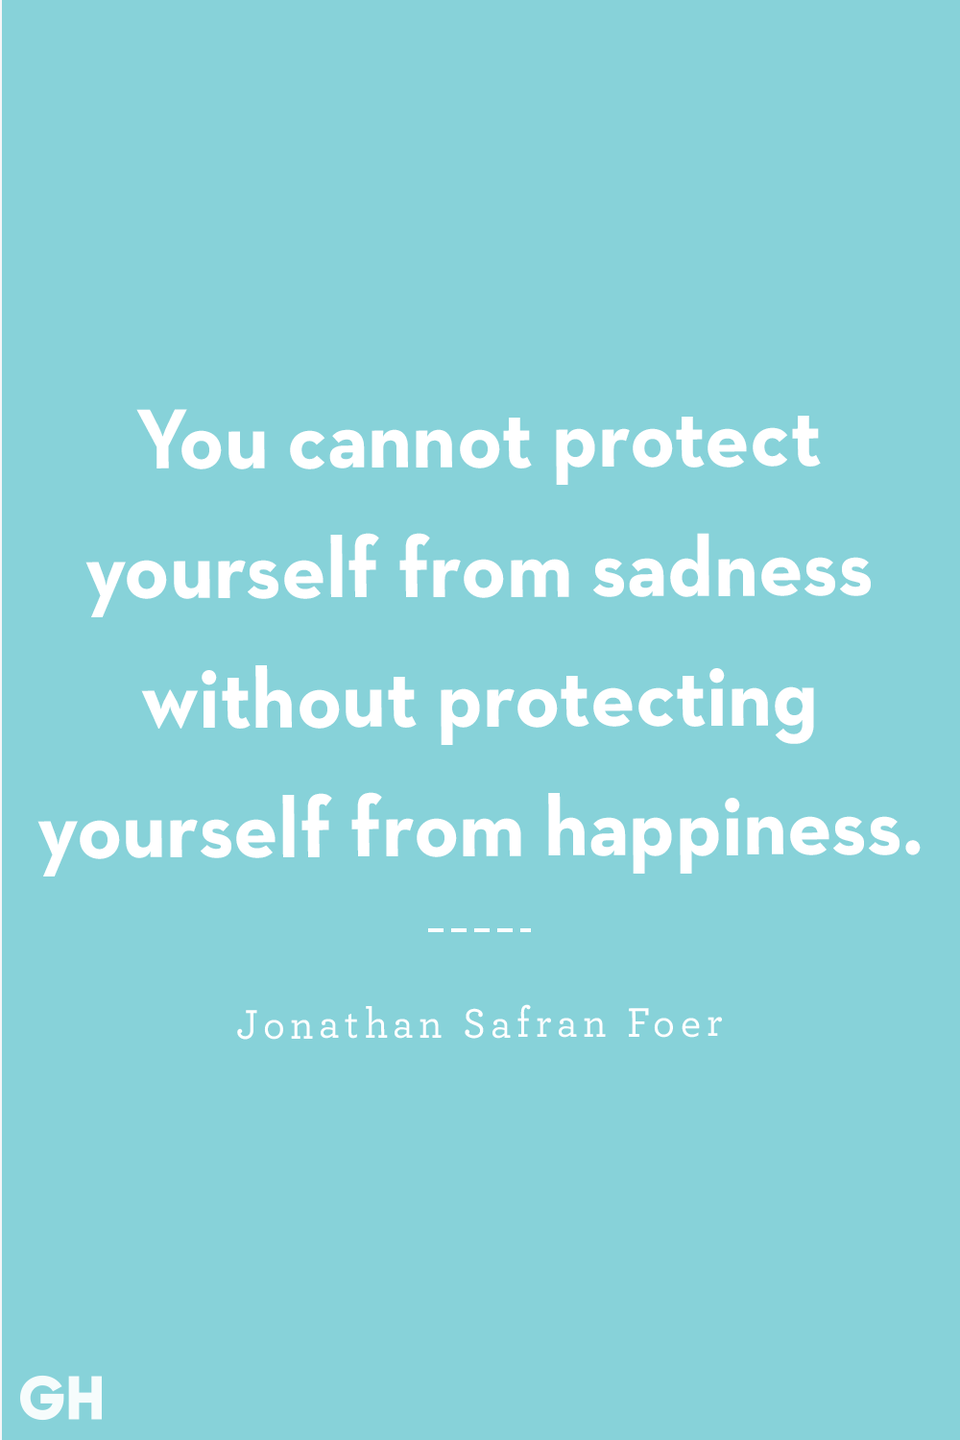 <p>You cannot protect yourself from sadness without protecting yourself from happiness.</p>